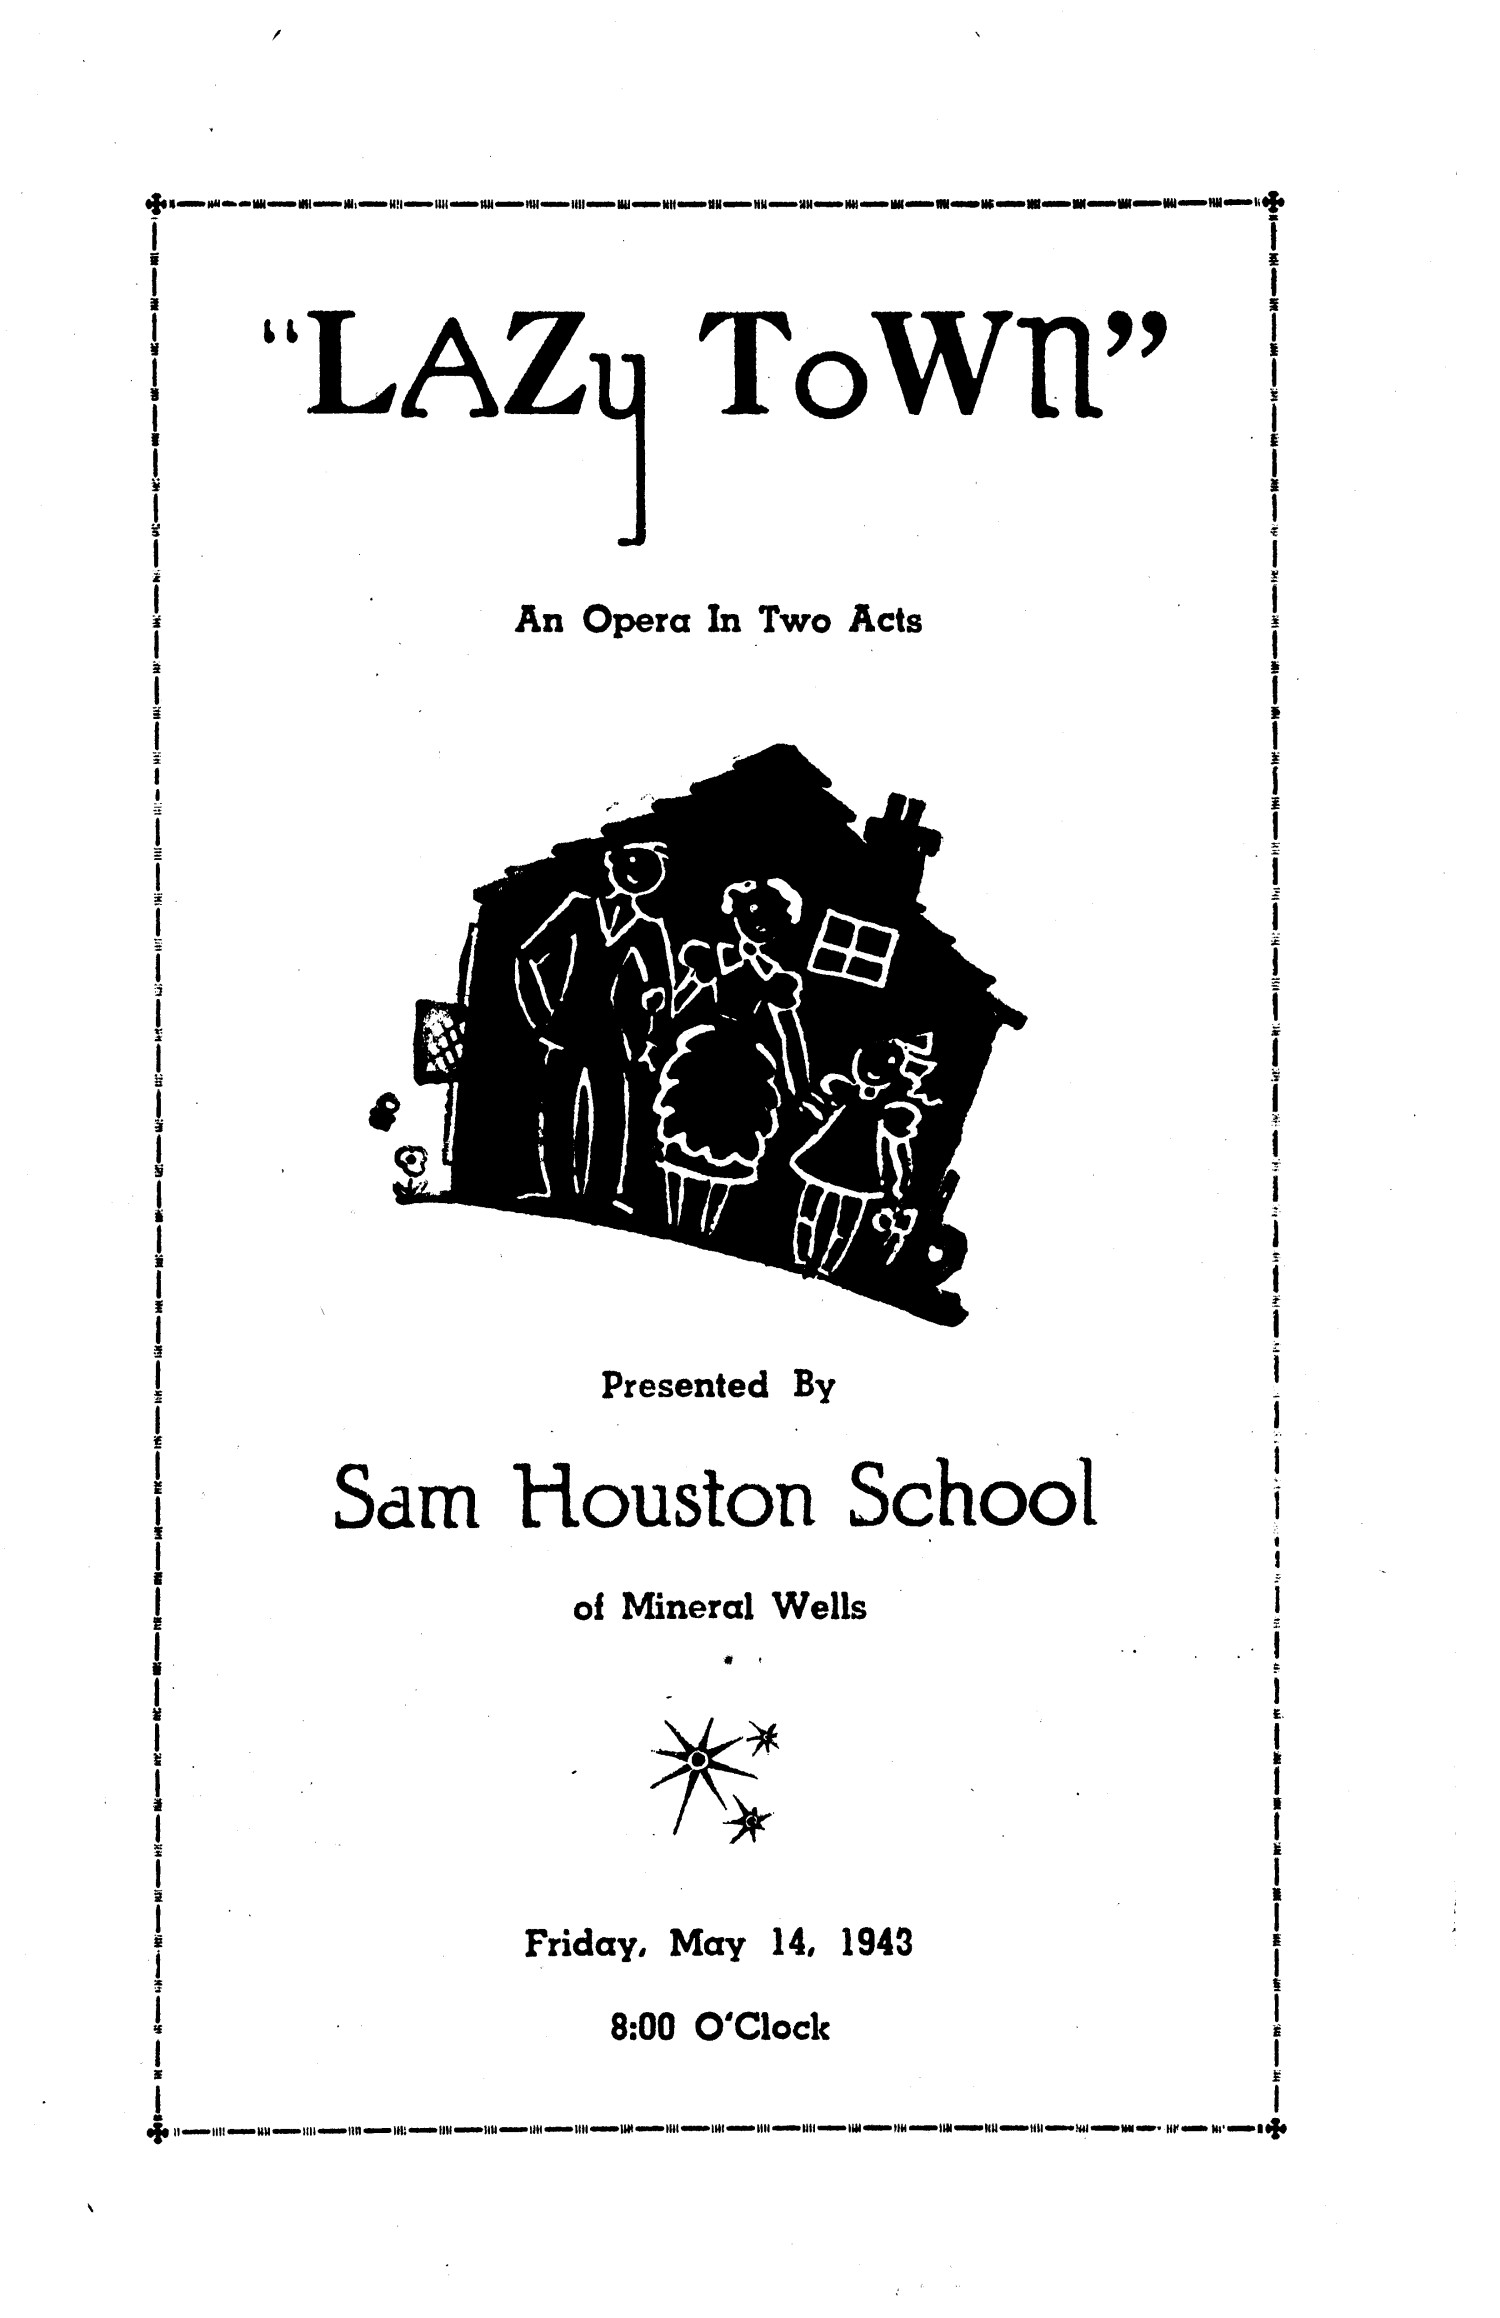 """[A Program for """"Lazy Town"""", an Opera in Two Acts], A program for """"Lazy Town - An Opera in Two Acts"""", presented by Sam Houston School on May 14, 1943.,"""